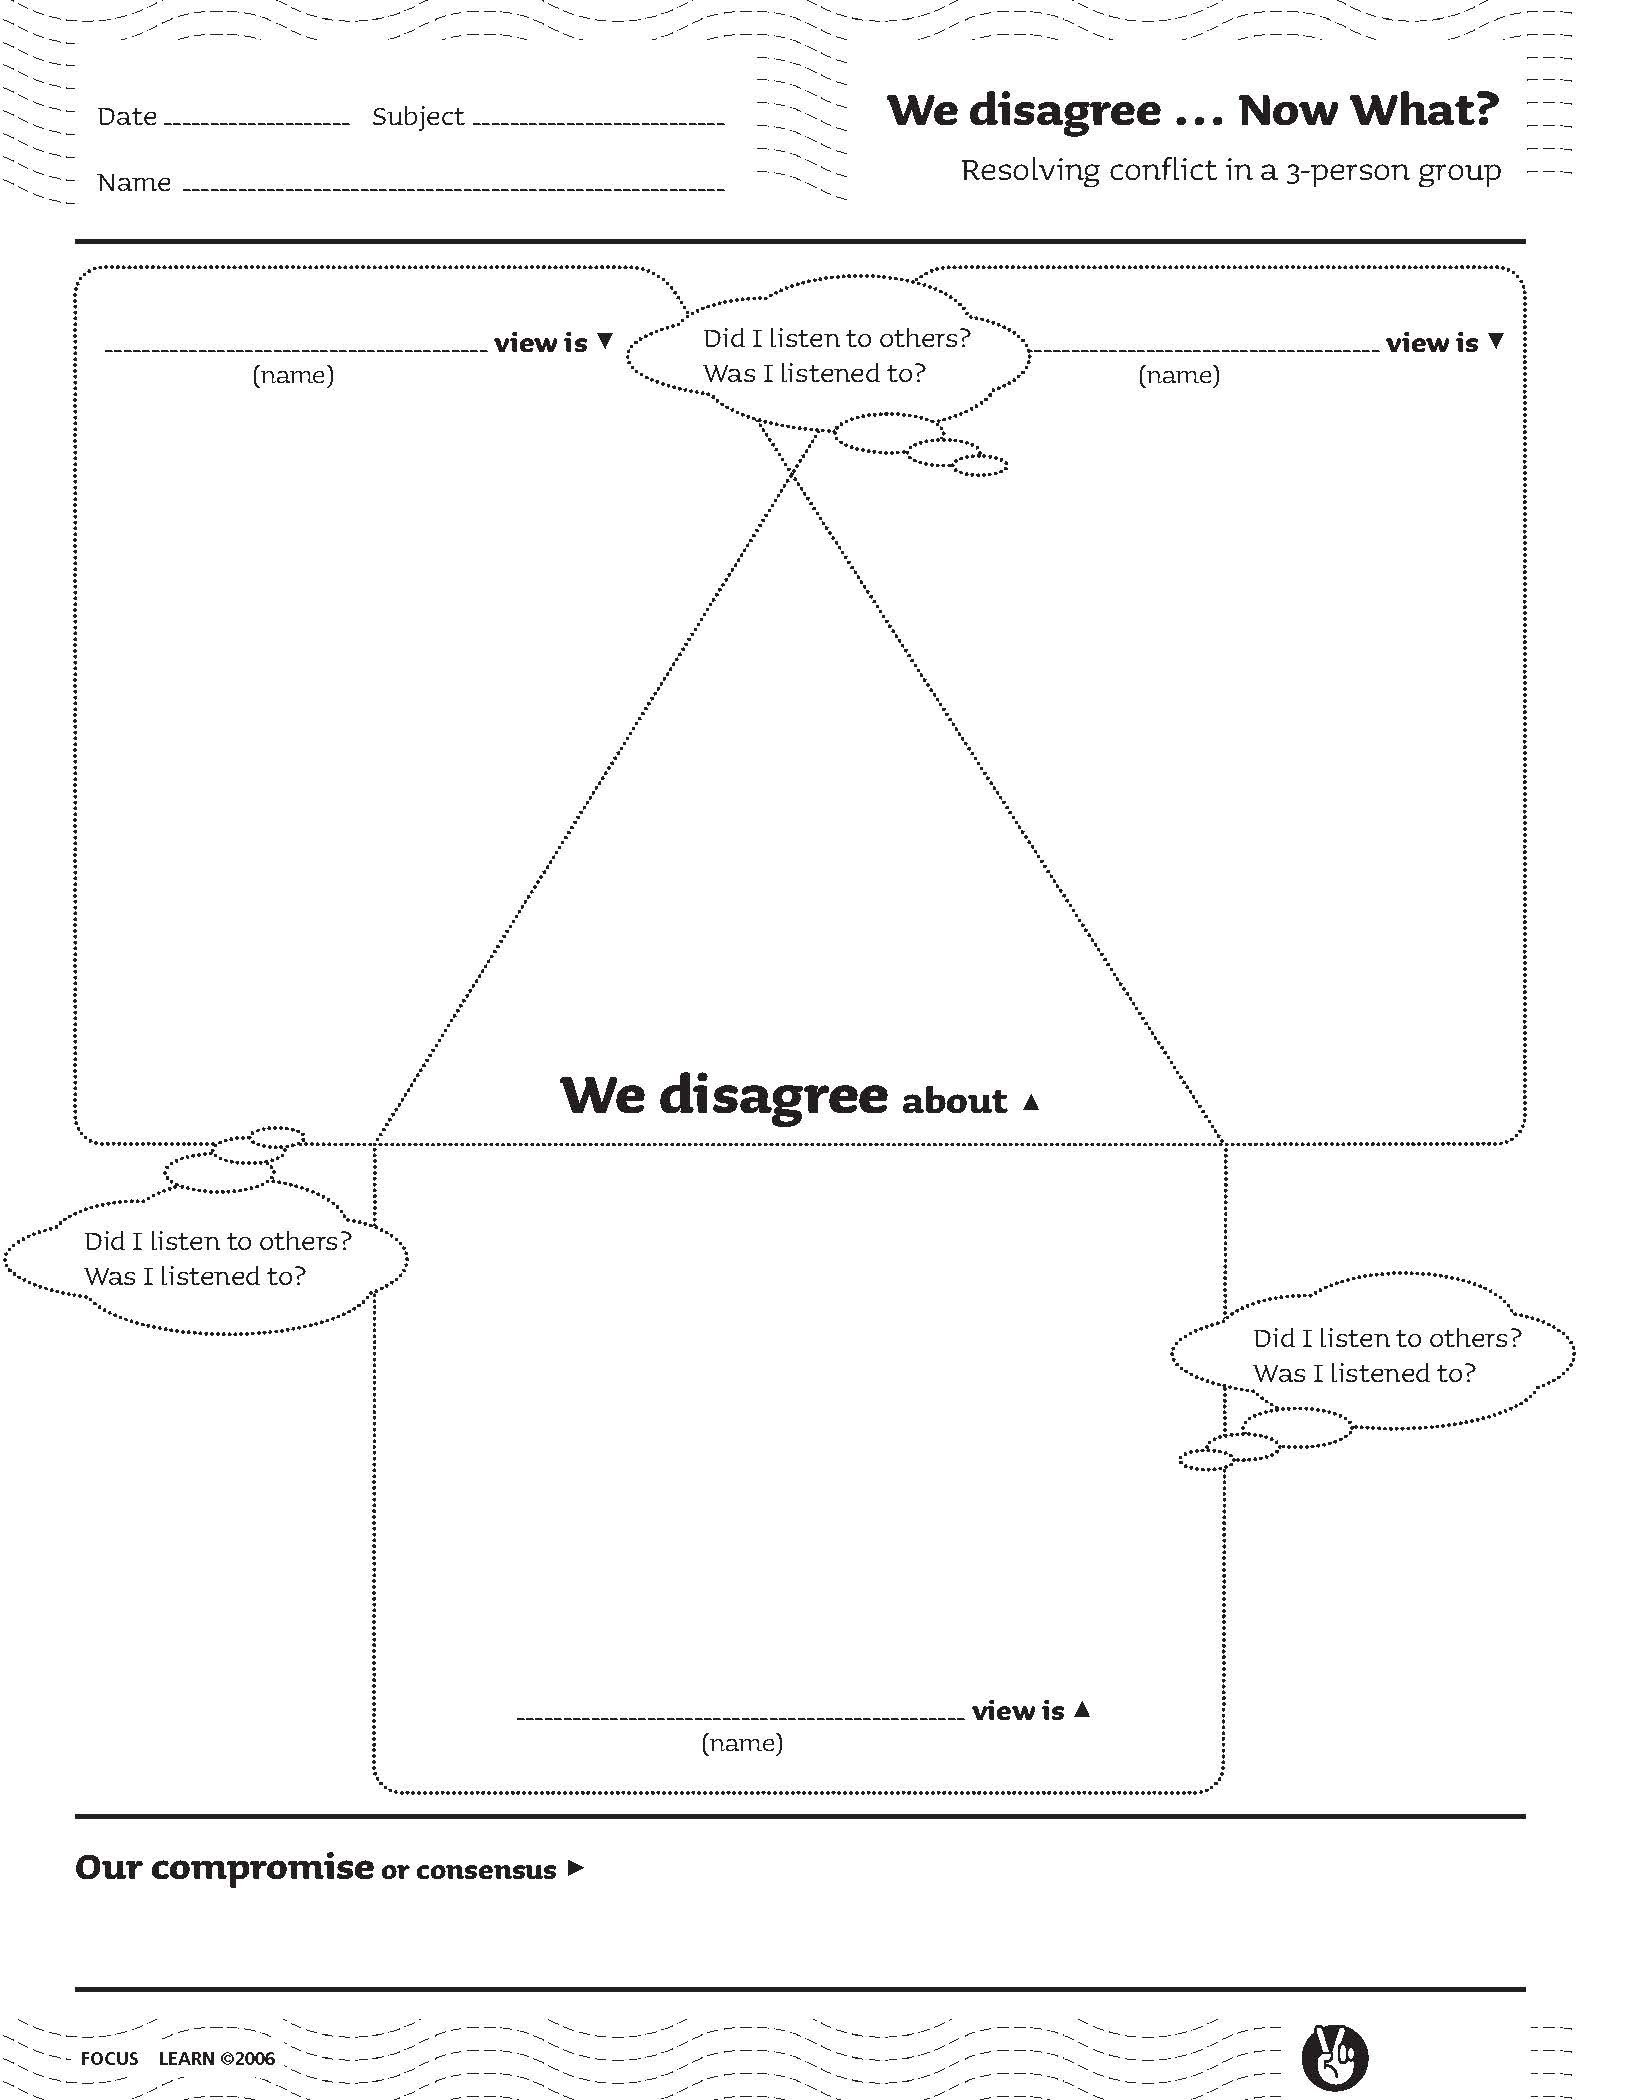 We Disagree...Now What? (Resolving conflict in a 3-person group)